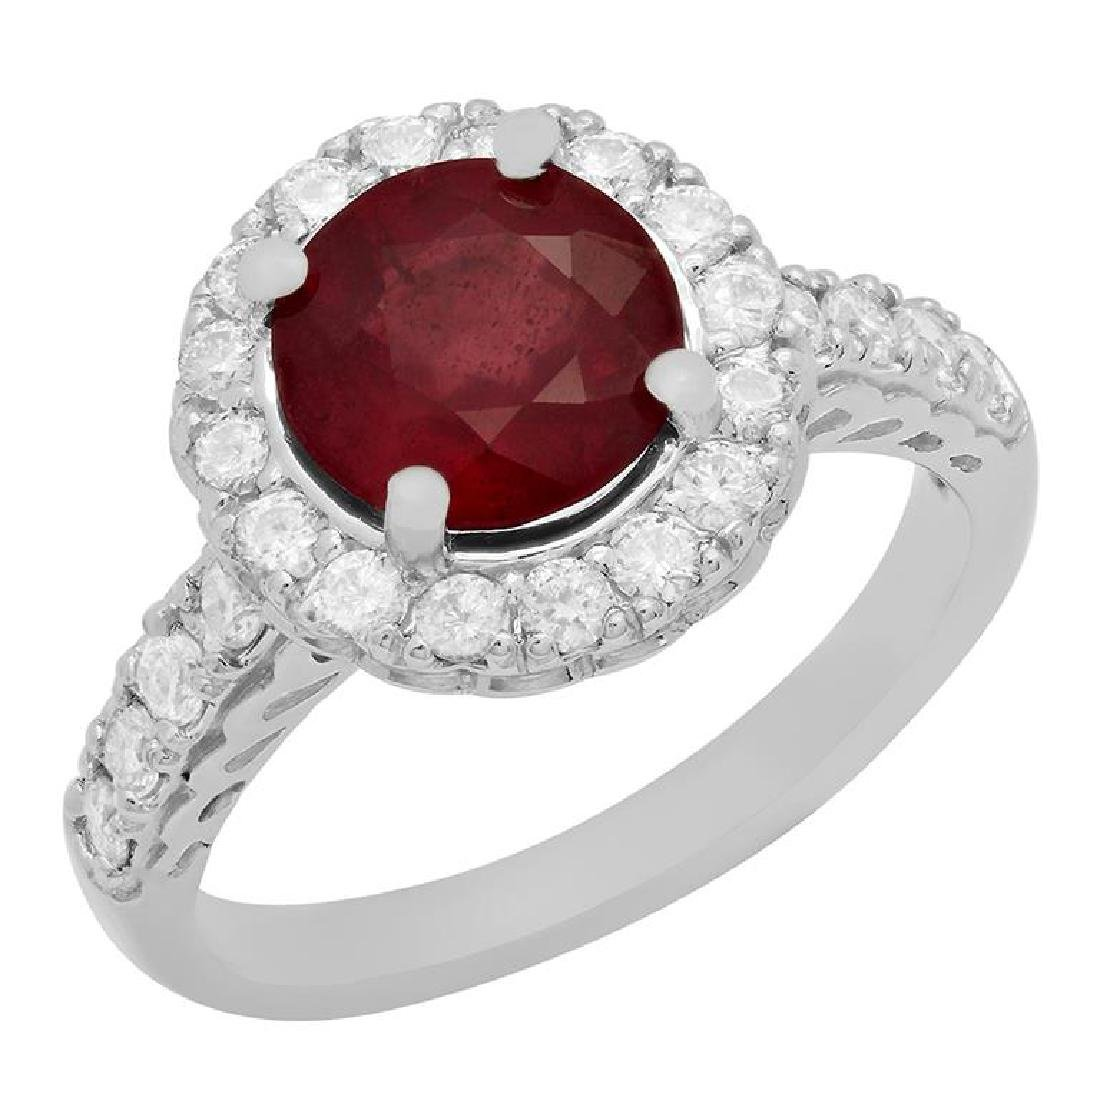 14k White Gold 2.15ct Ruby 0.78ct Diamond Ring